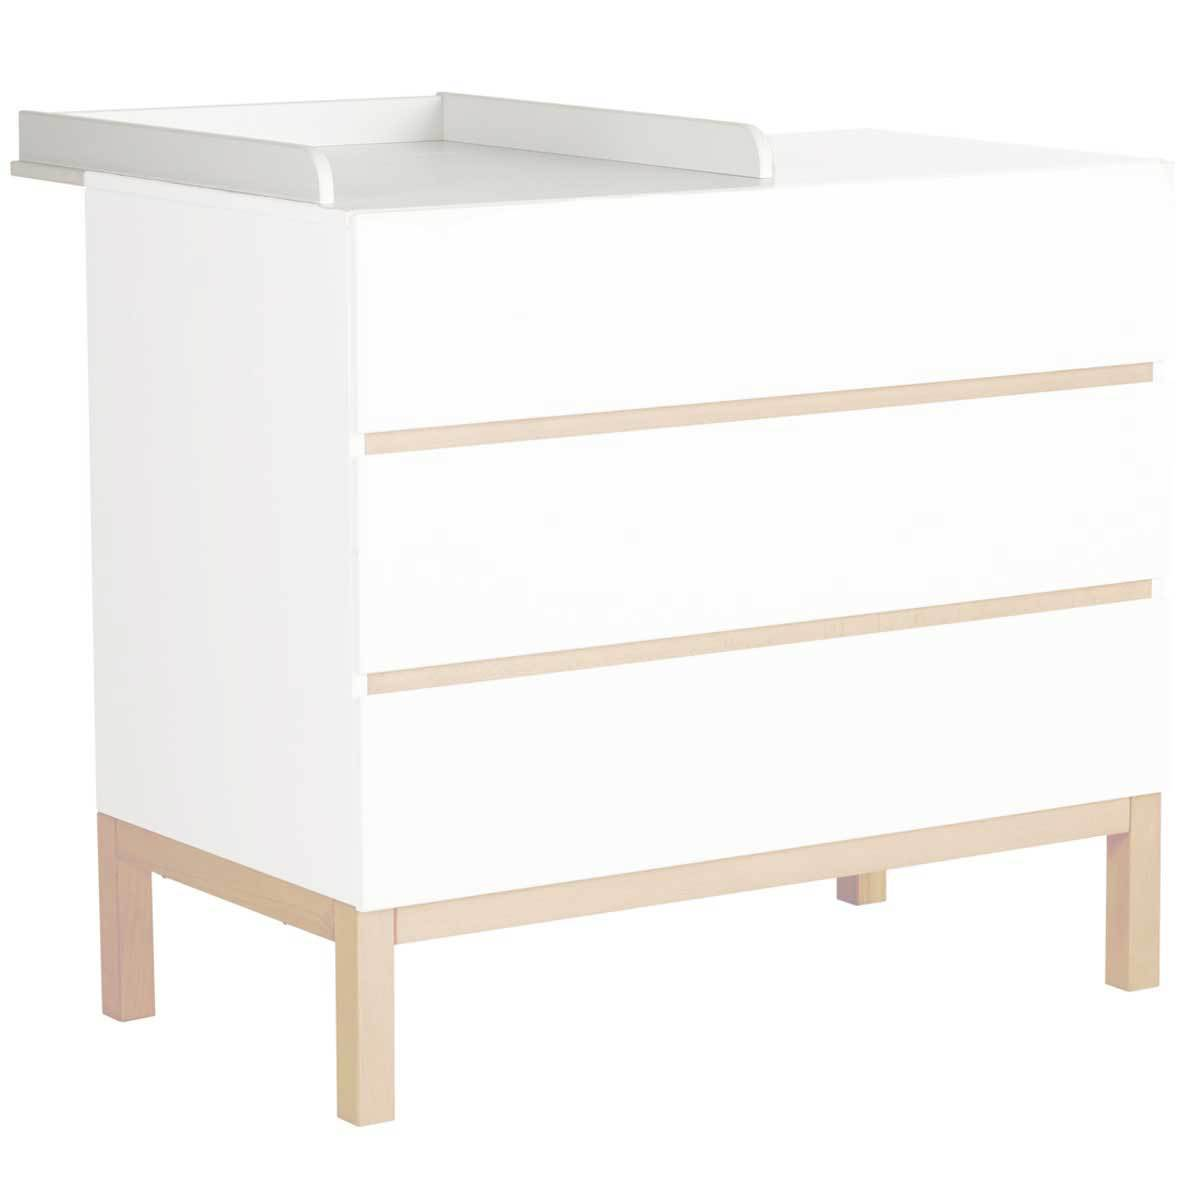 quax plan langer indigo blanc table langer quax sur l 39 armoire de b b. Black Bedroom Furniture Sets. Home Design Ideas